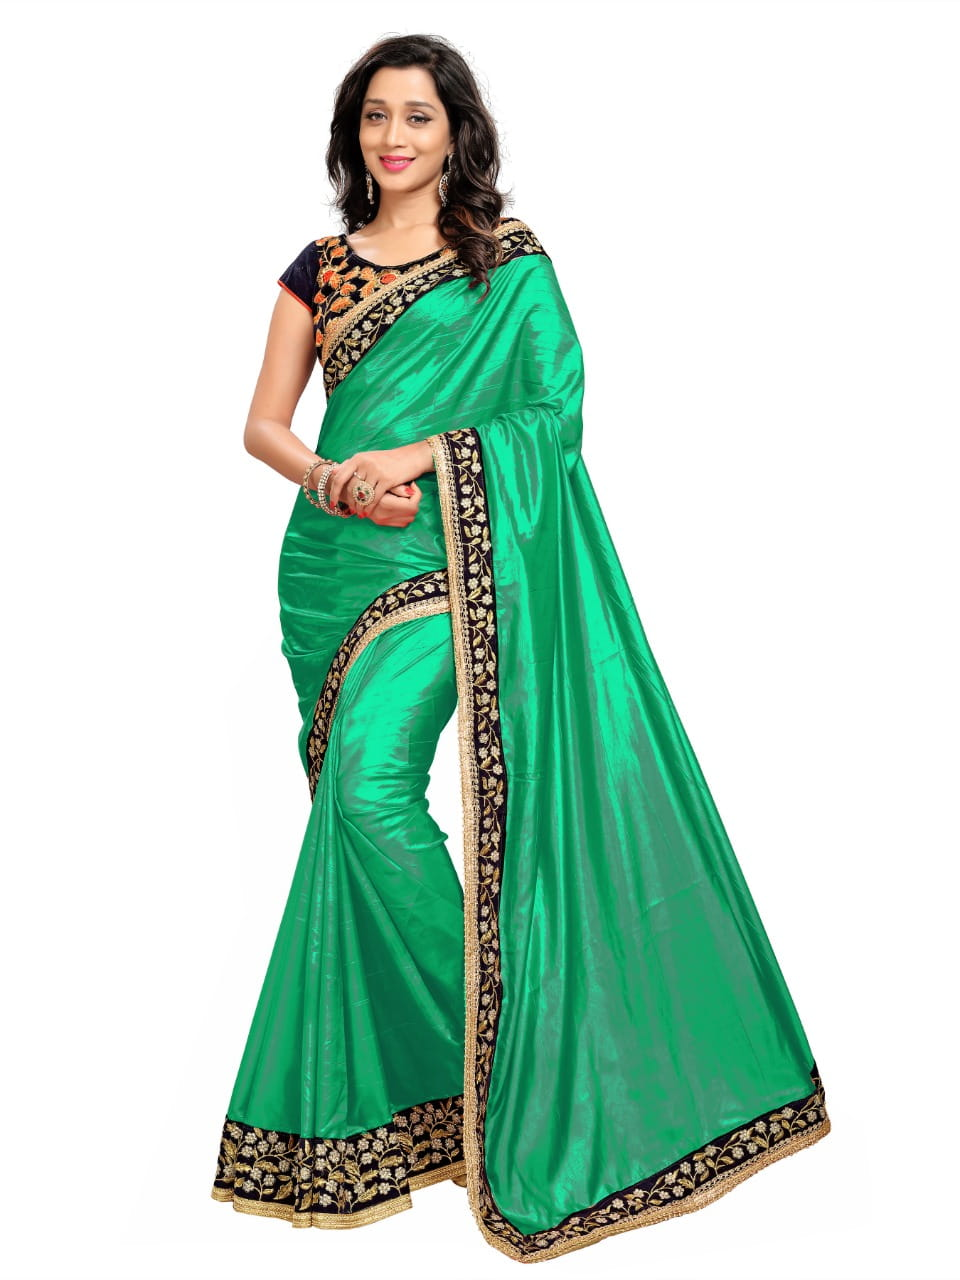 Glourious Rama Green Color Wedding Wear Paper Silk Designer Embroidered Work Saree Blouse For Ladies